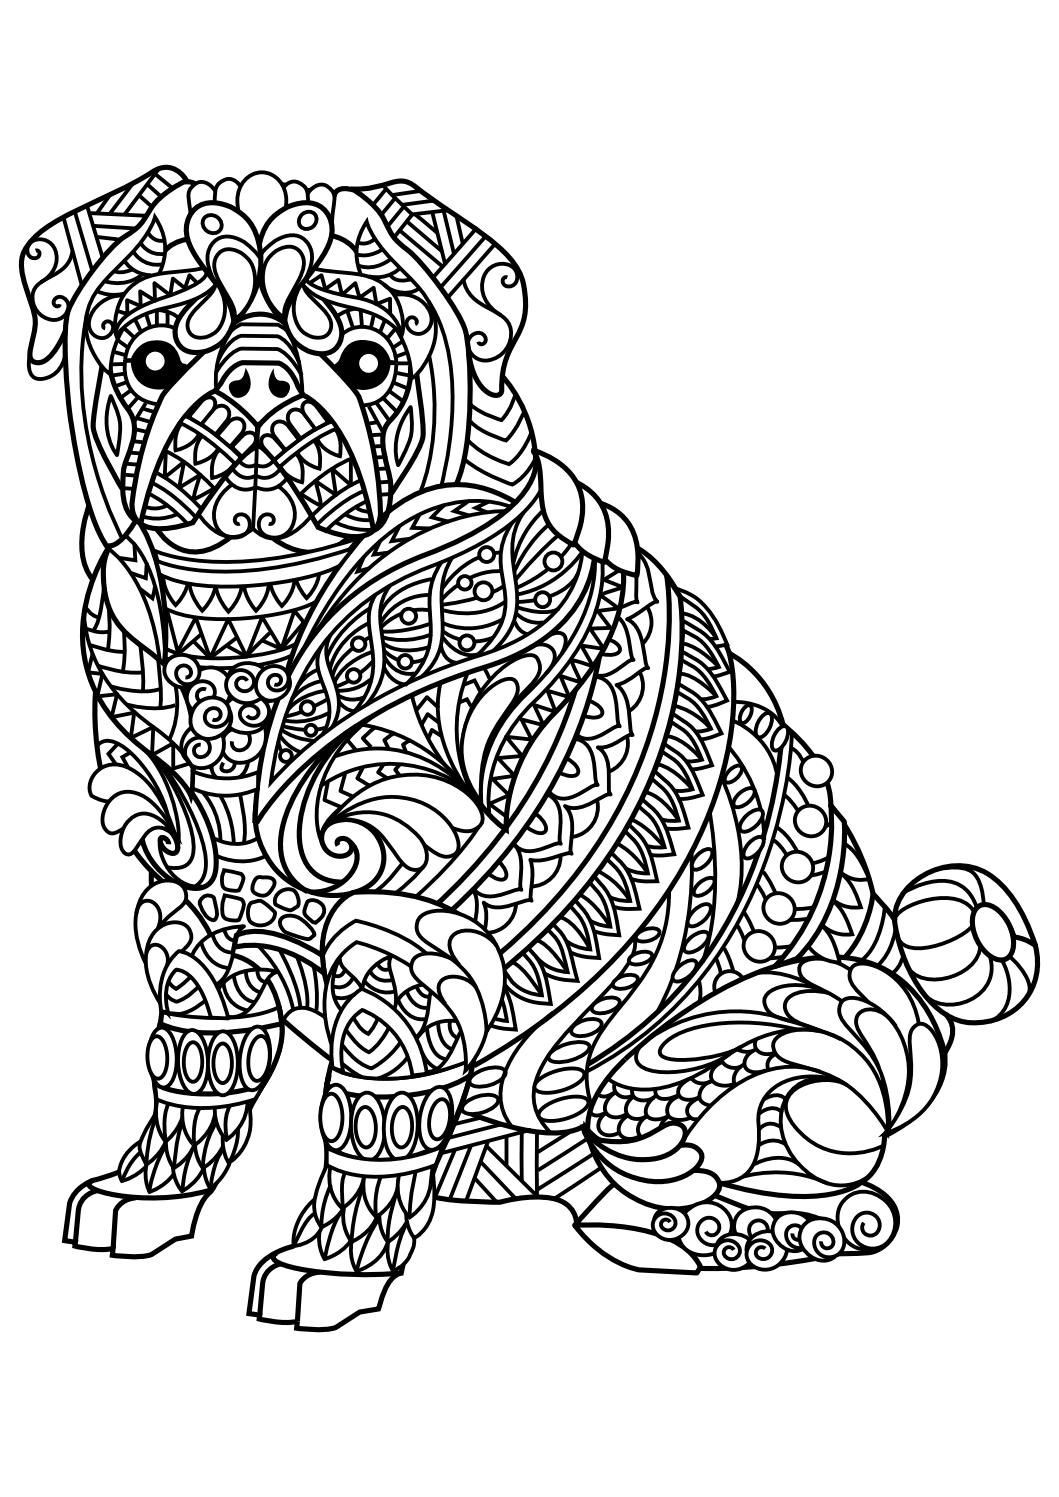 Best ideas about Mandala Animal Coloring Sheets For Girls . Save or Pin Animal coloring pages pdf Coloring Animals Now.